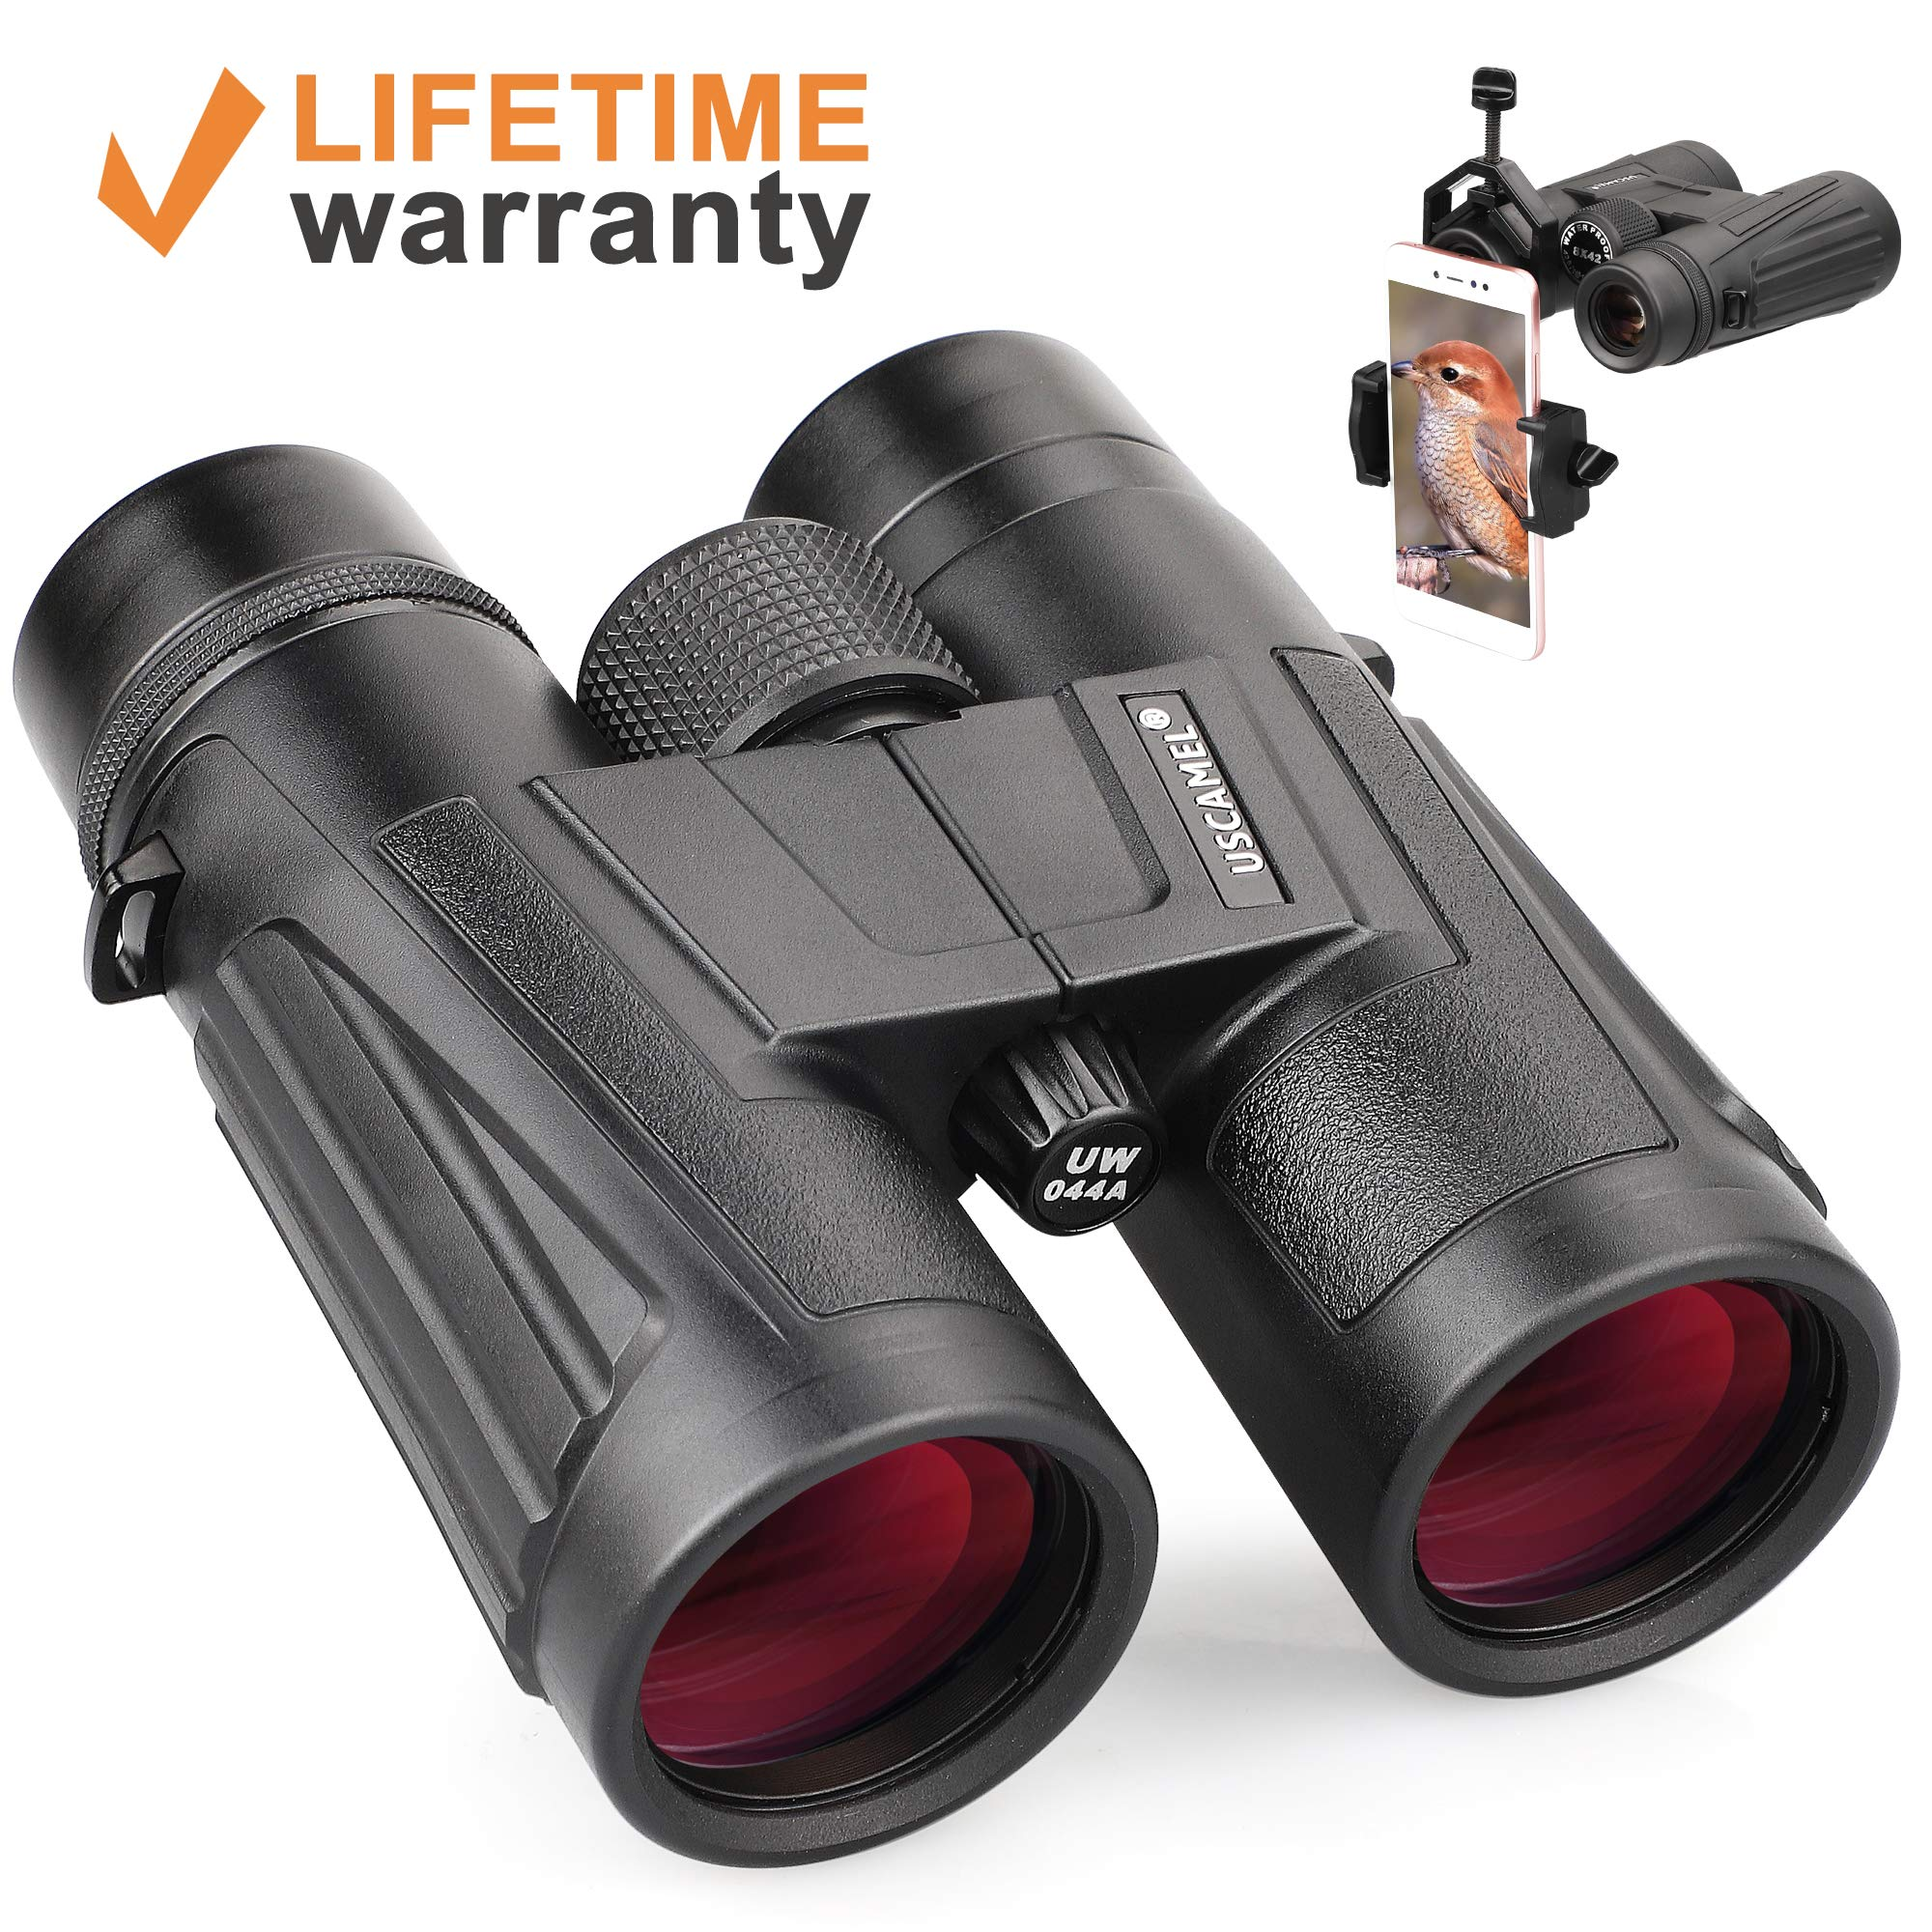 USCAMEL Optics Ultra HD 10X42 Compact Binoculars for Bird Watching with ED Glass, Wide View, Close Focus, Waterproof ,Suitable for Adult Bird Watching, Hunting, Watching Wildlife, Scenery by USCAMEL